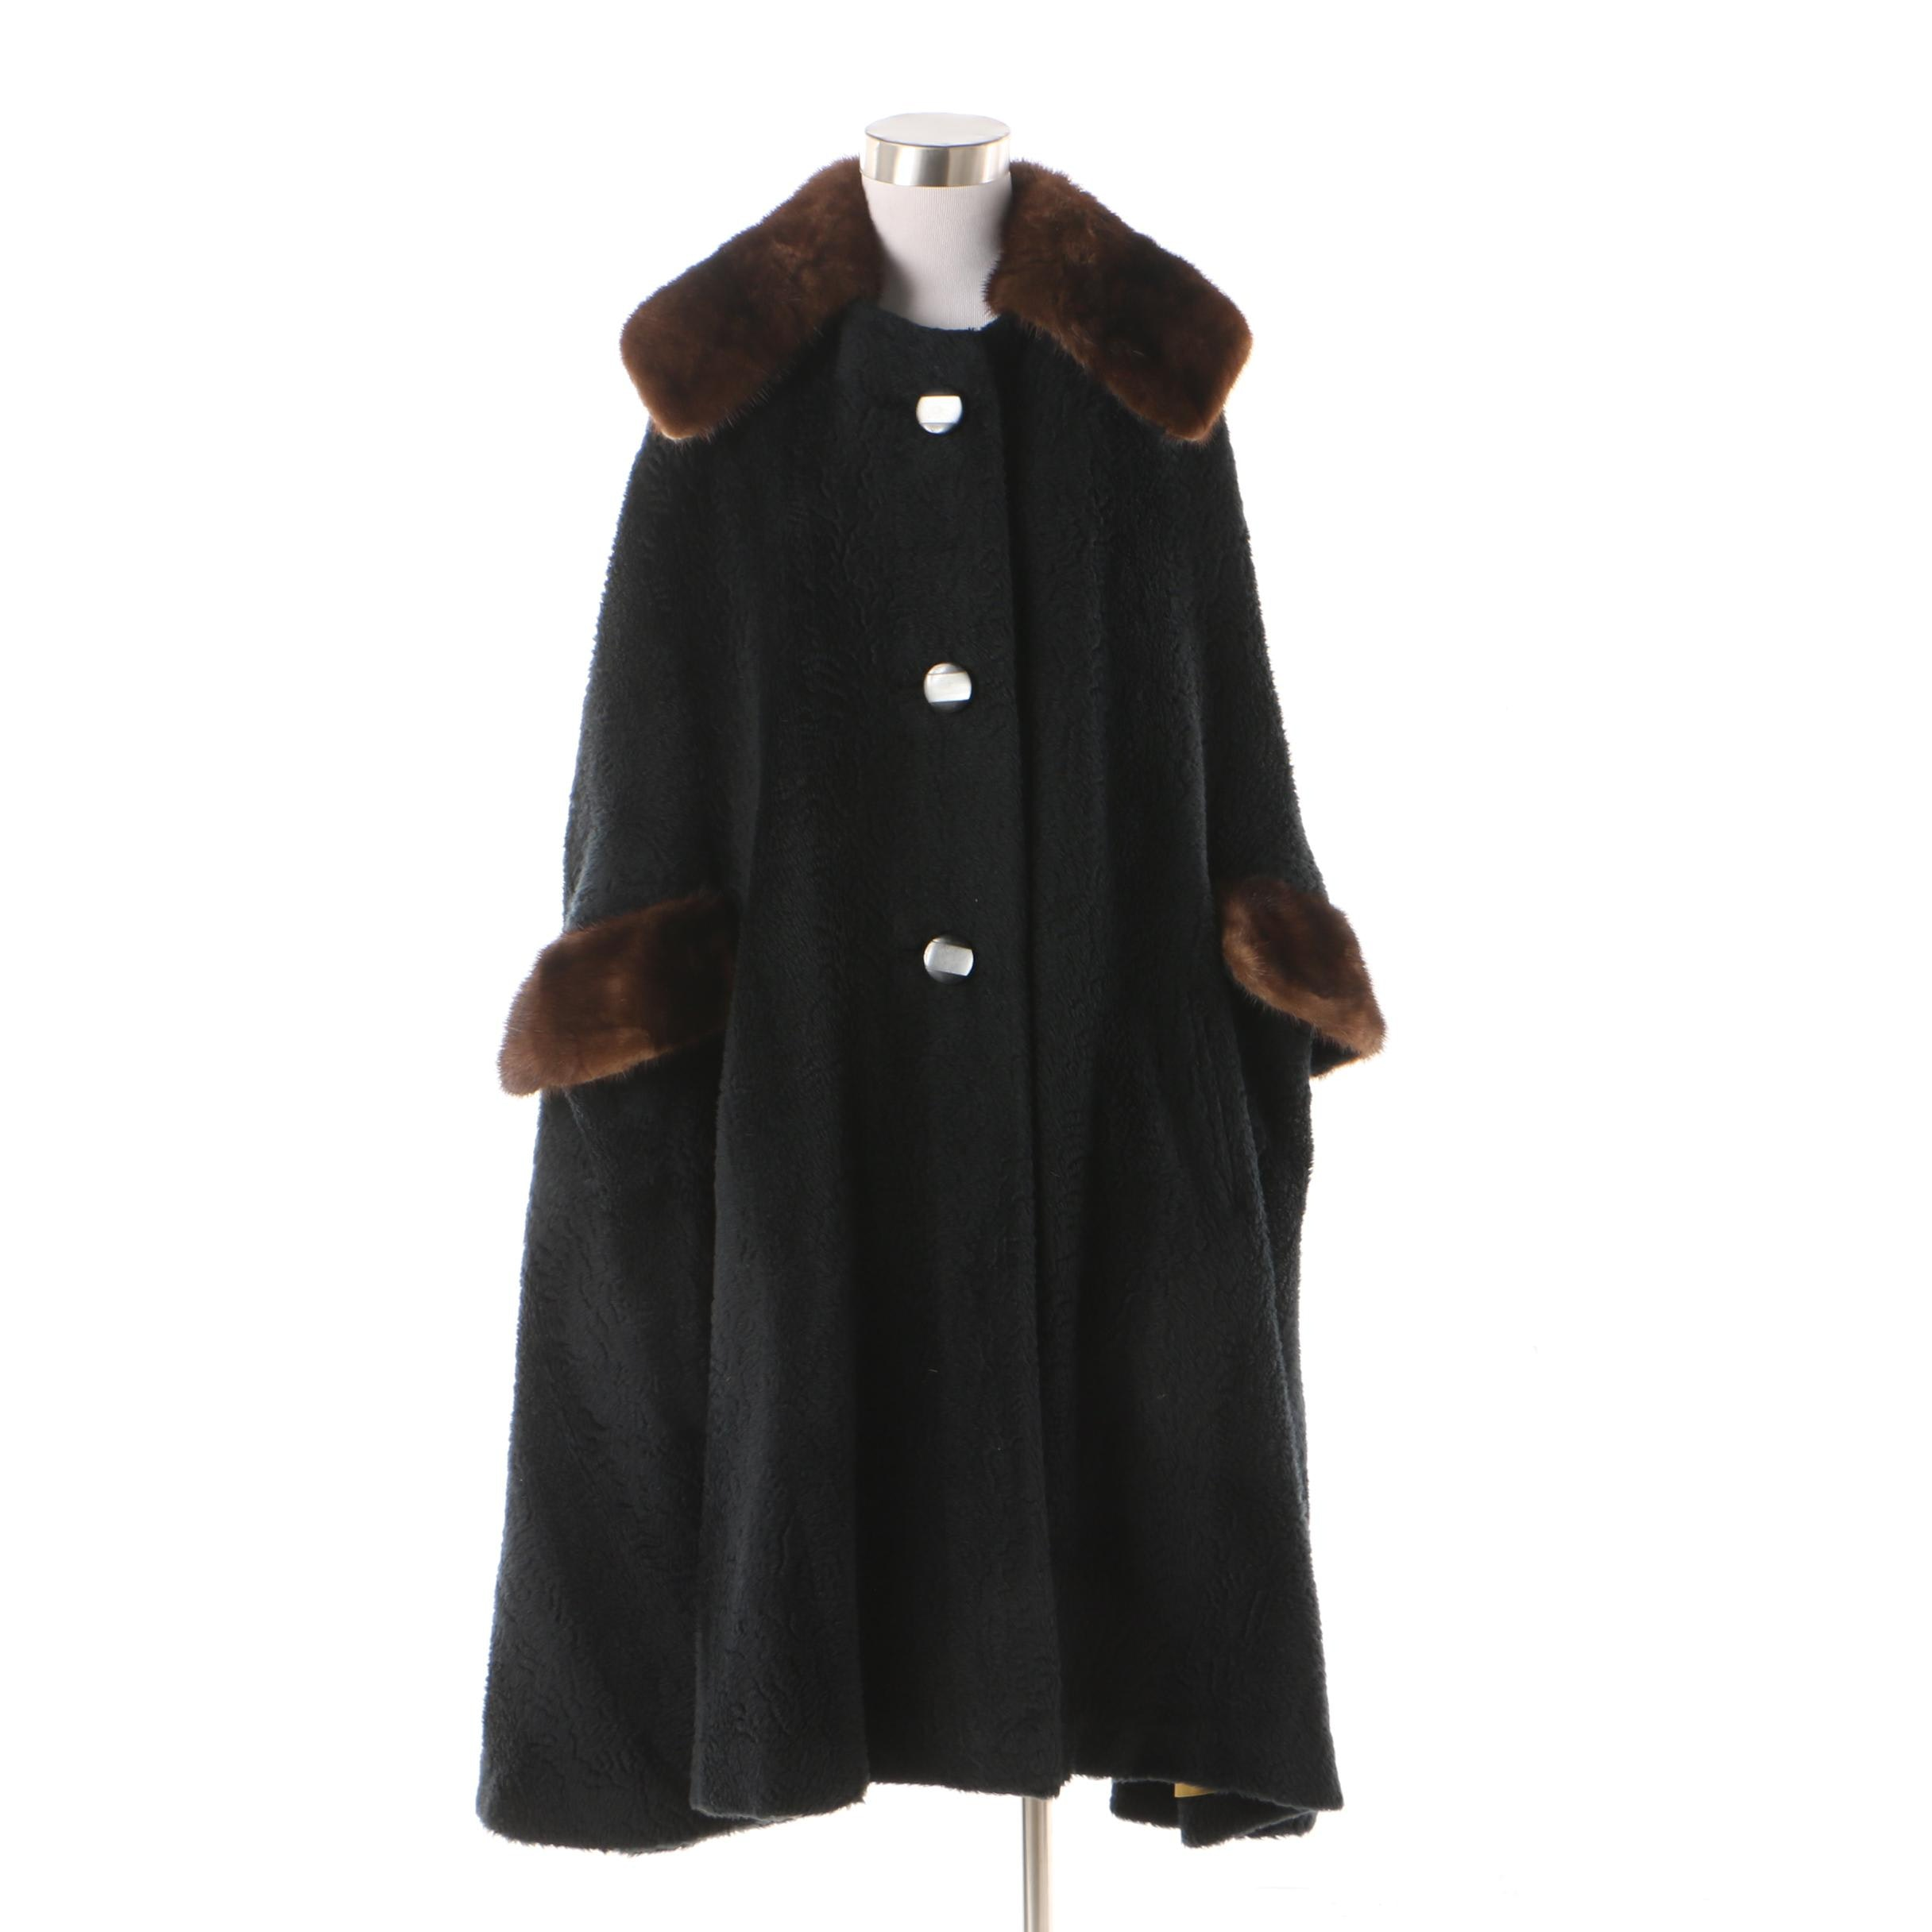 Women's Black Faux Fur Cape Coat with Mink Fur Collar and Trim